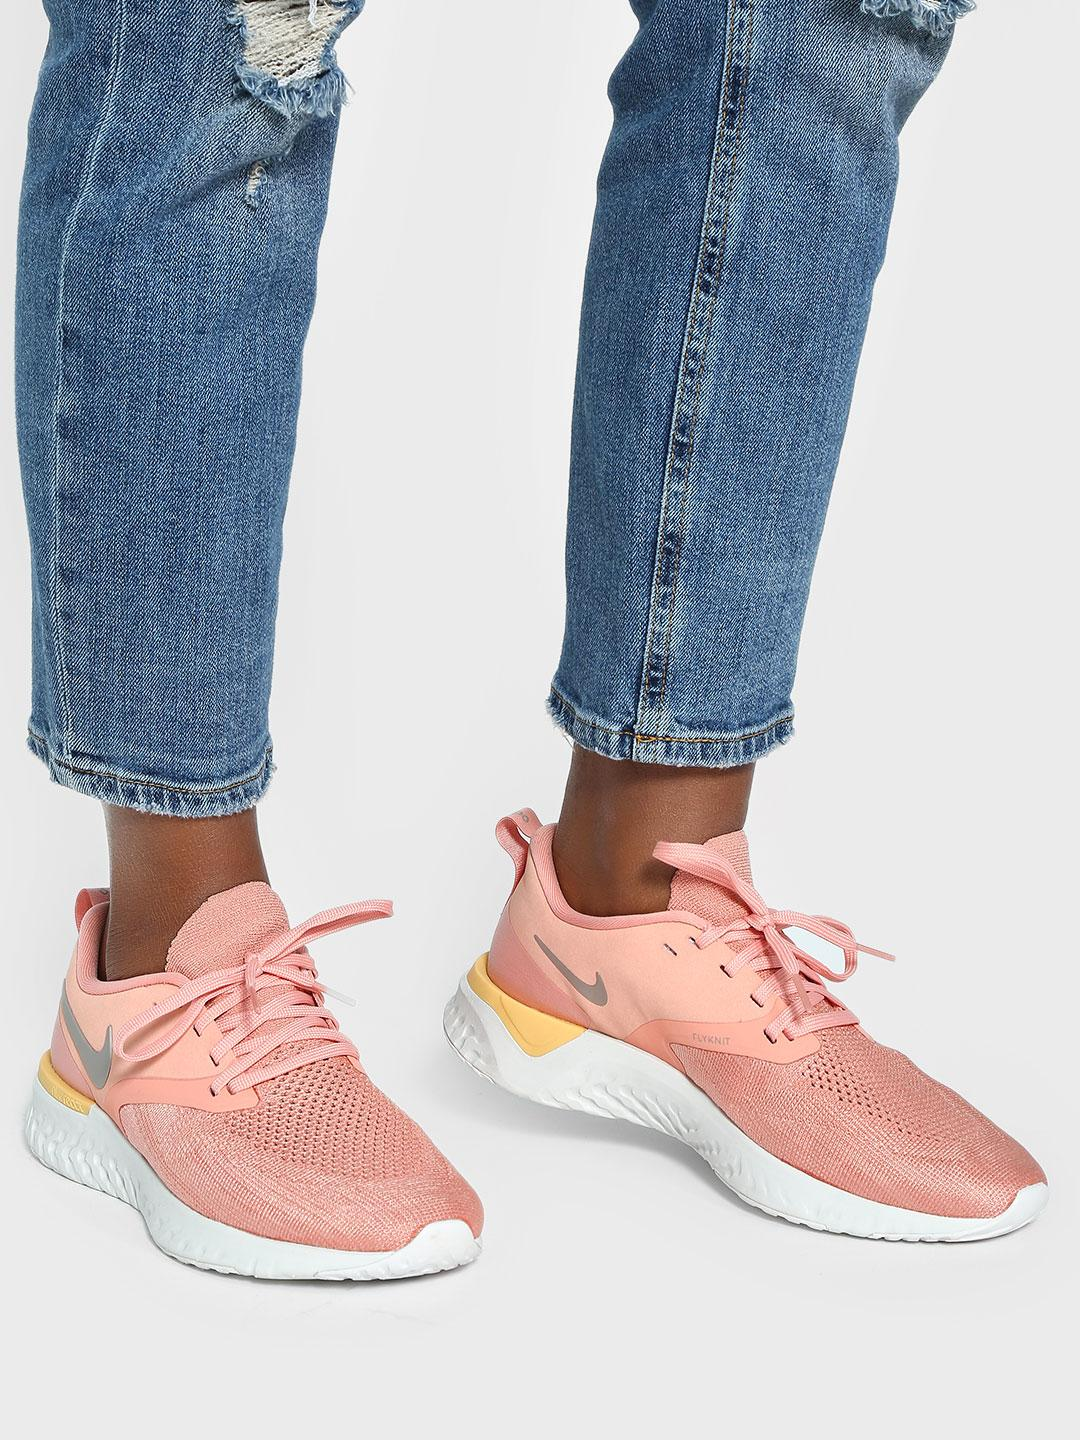 Nike Pink Odyssey React 2 Flyknit Shoes 1